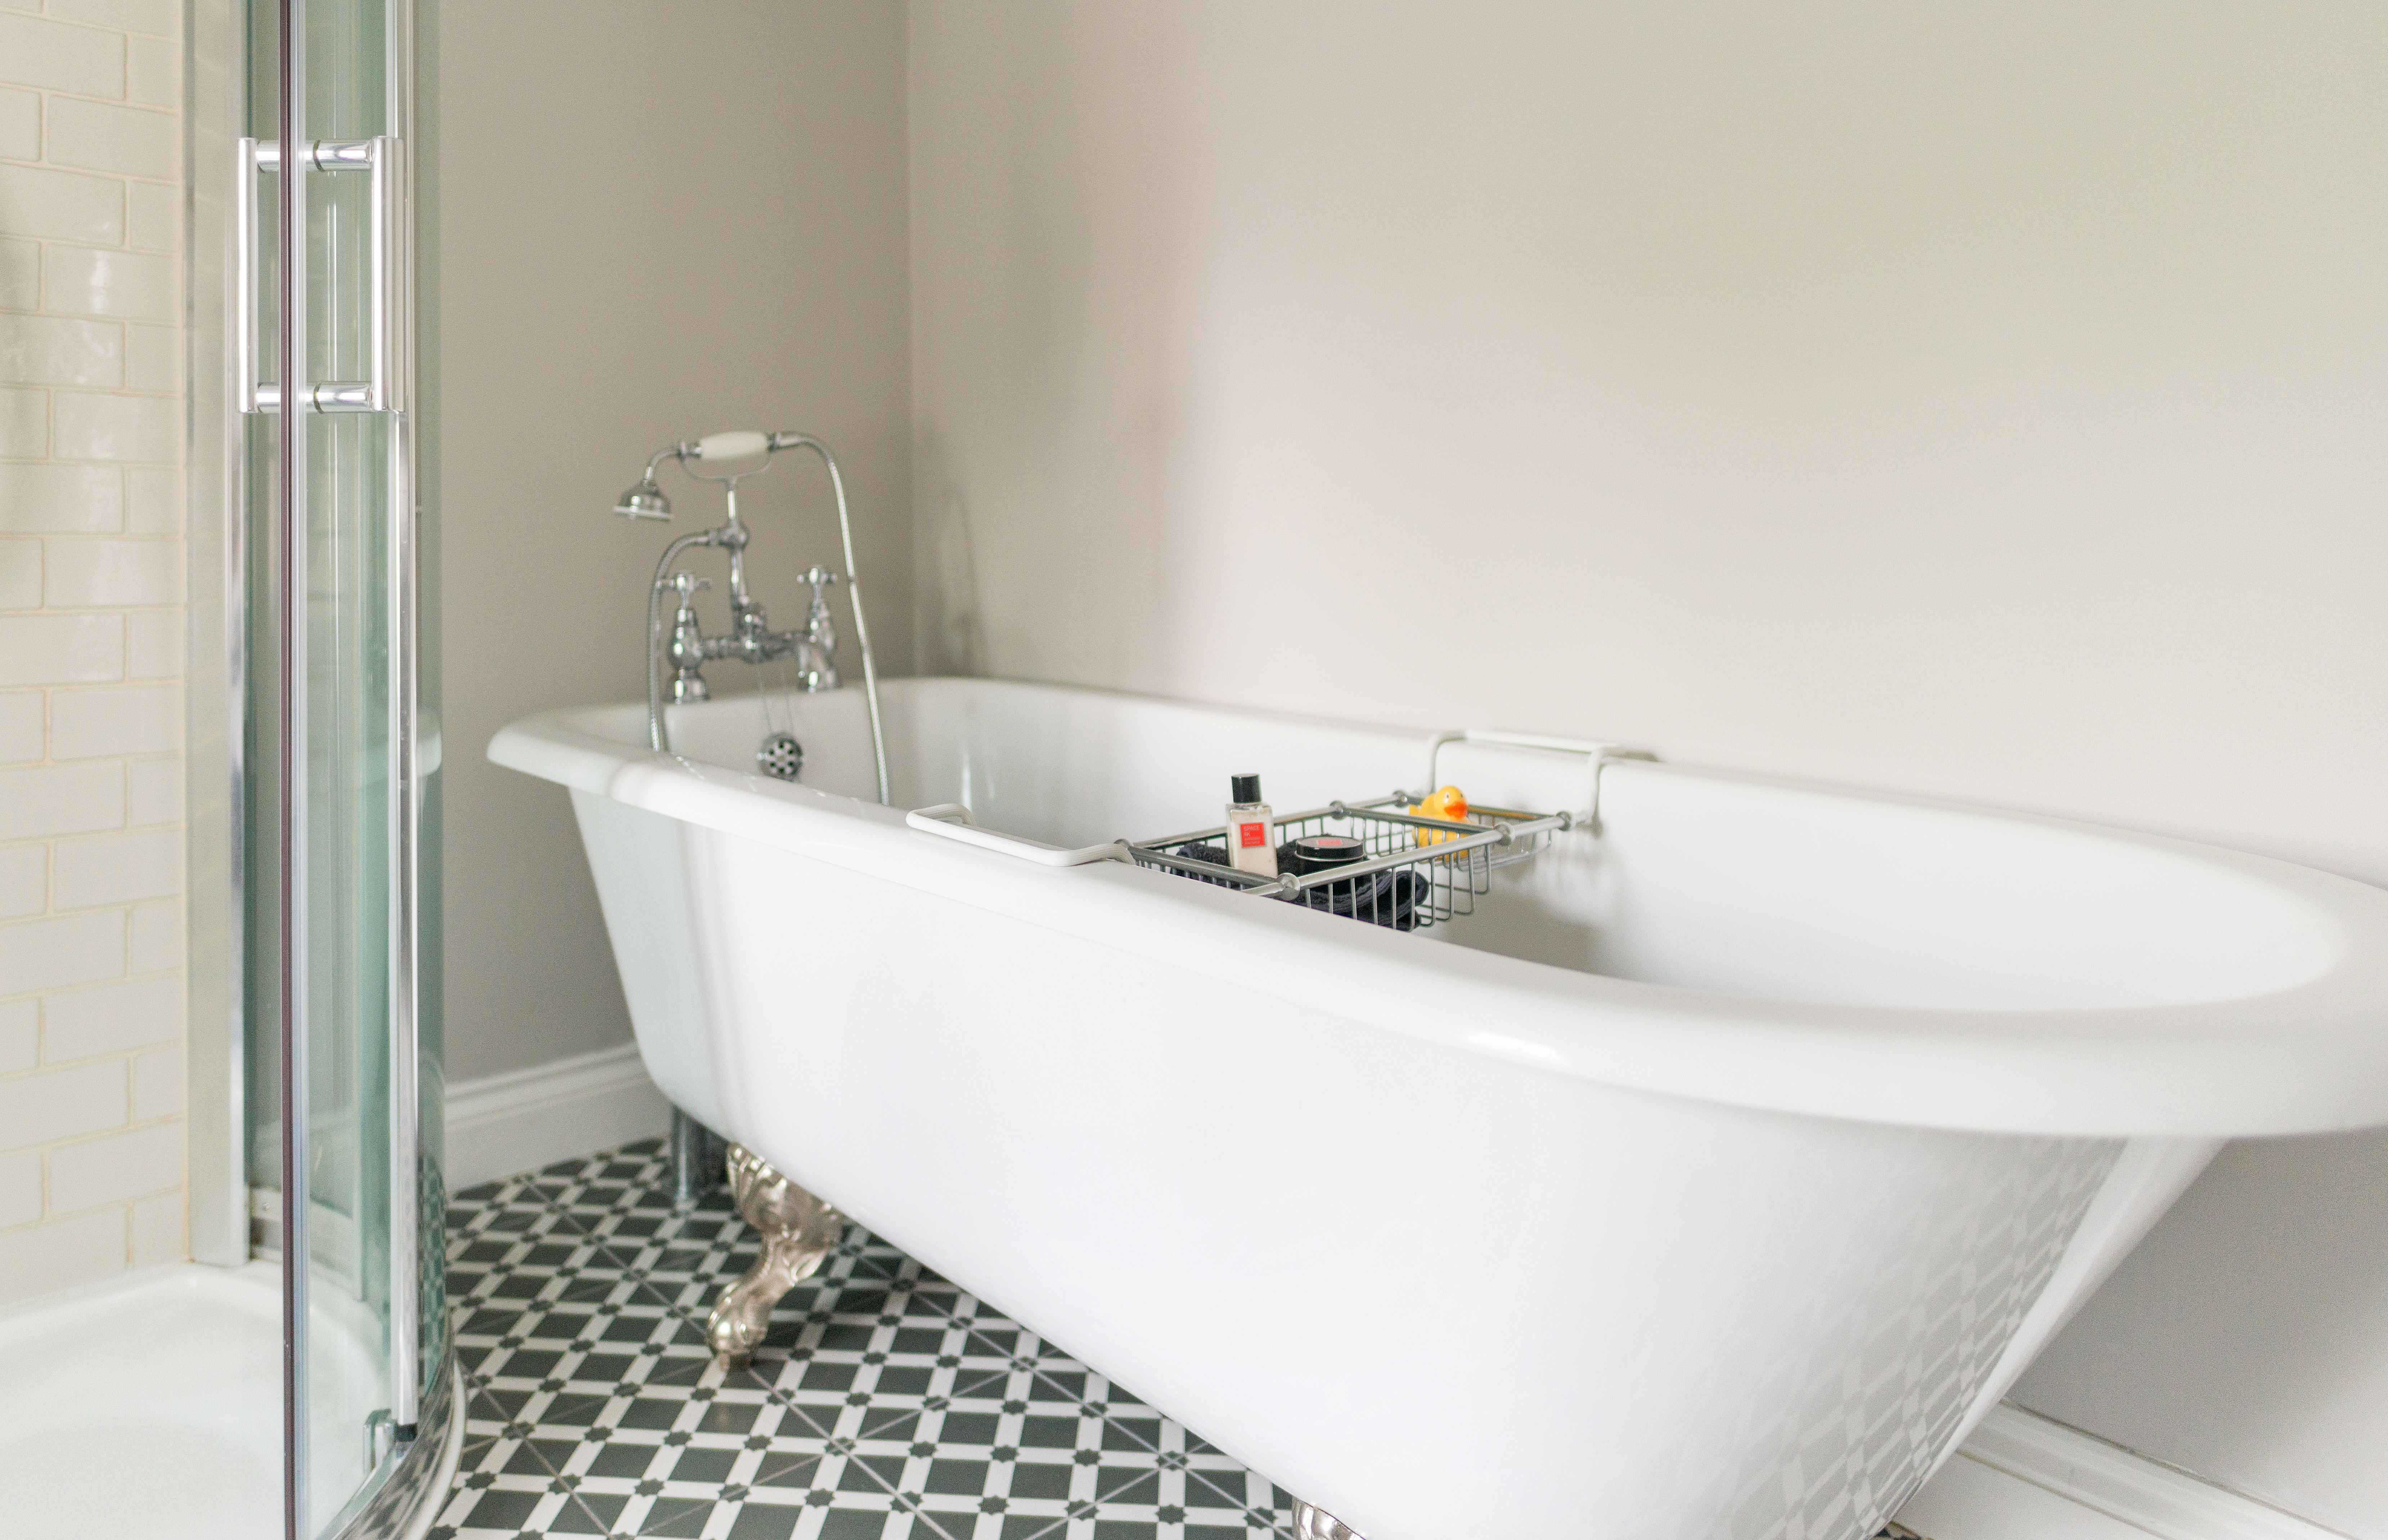 Bathroom at Spindle cottage. A family friendly cottage in the New Forest.